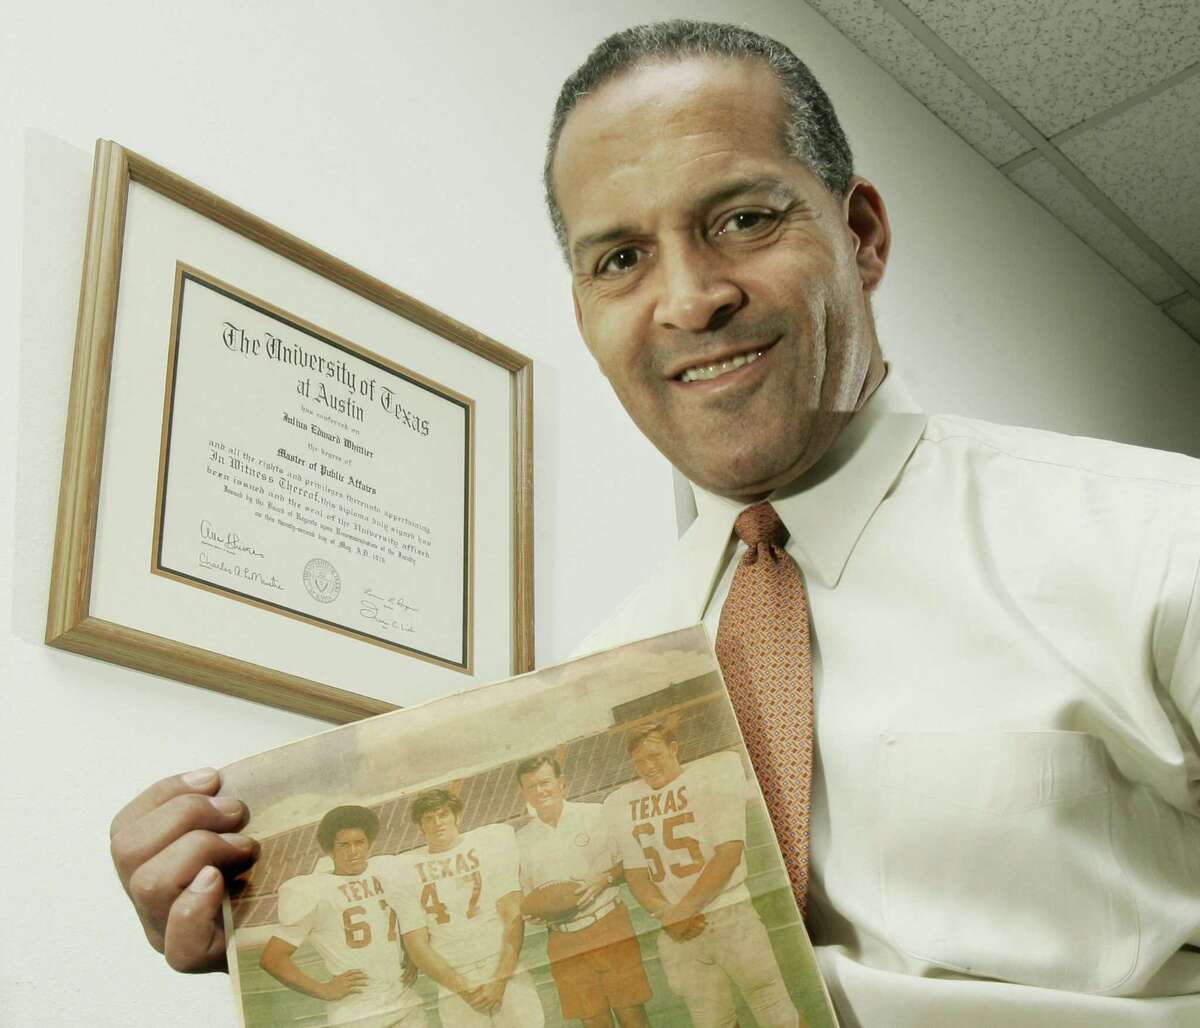 Dallas attorney and former Texas Longhorn Julius Whittier holds a newspaper clipping from 1971 featuring Whittier with teammates Bruce Cannon, Greg Dahlberg, and coach Darrell Royal. Whittier, the first African-American to letter in football at Texas, died Tuesday at age 68.